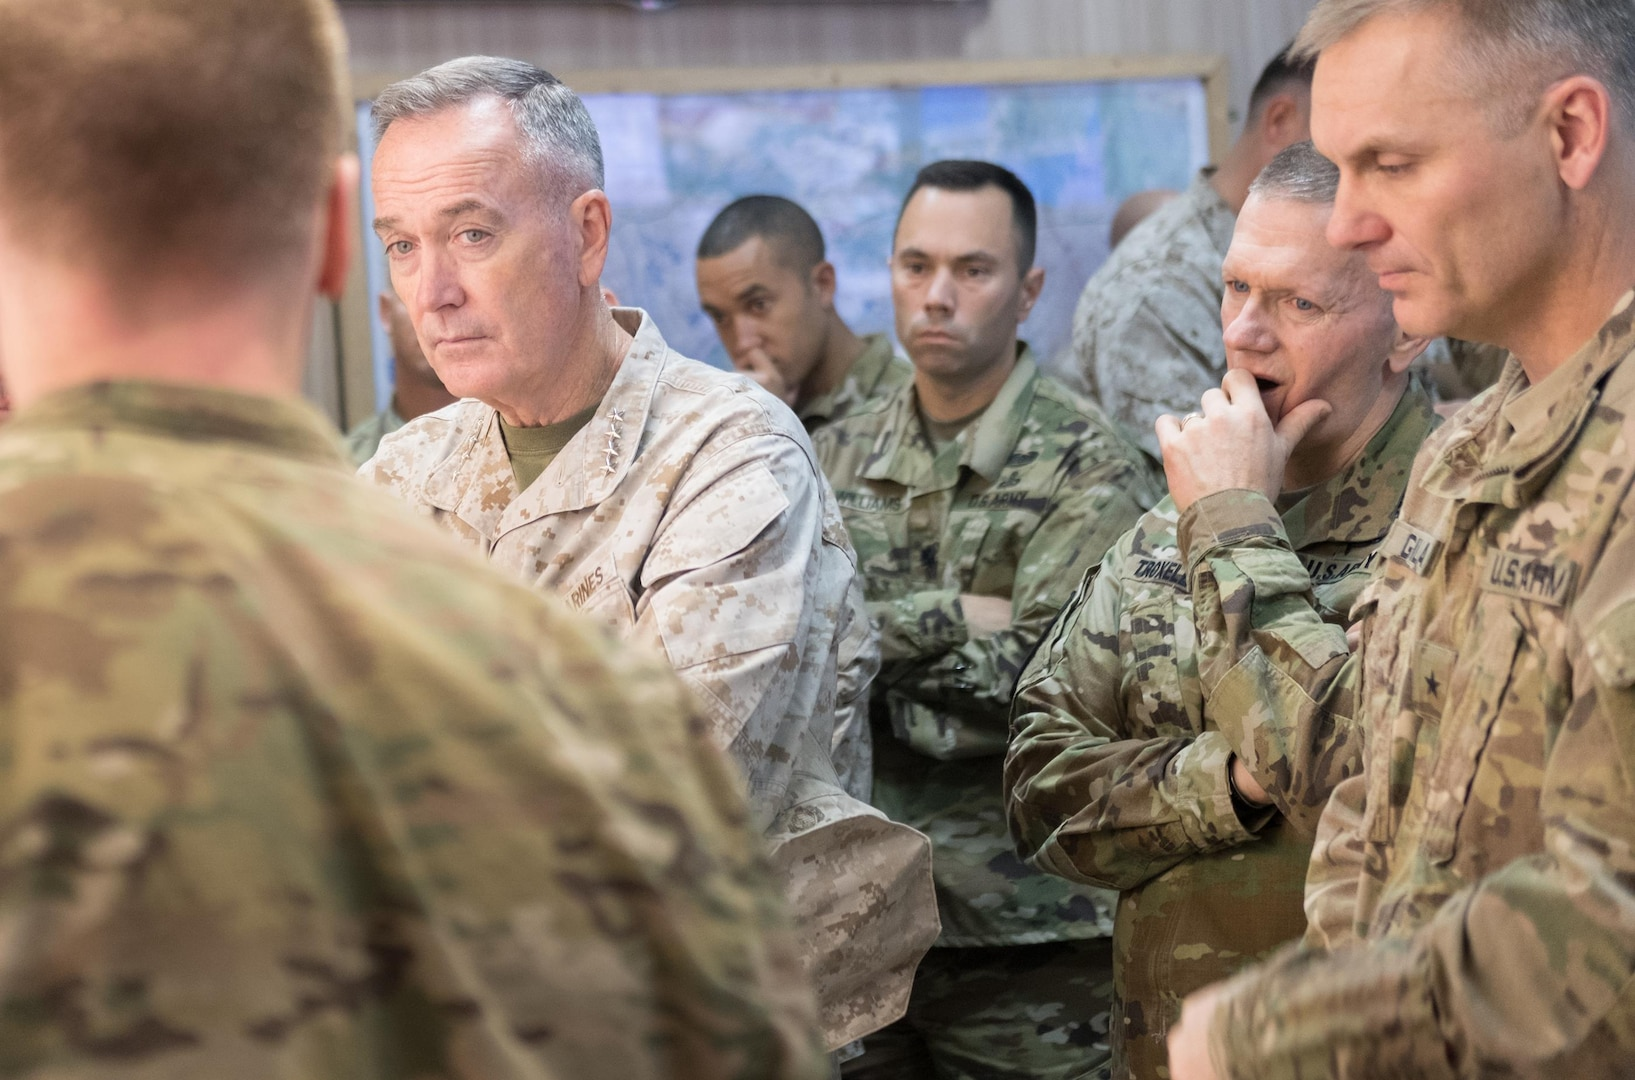 Marine Corps Gen. Joe Dunford, chairman of the Joint Chiefs of Staff, talks with military leaders in Irbil, Iraq, Nov. 9, 2016. DoD photo by D. Myles Cullen